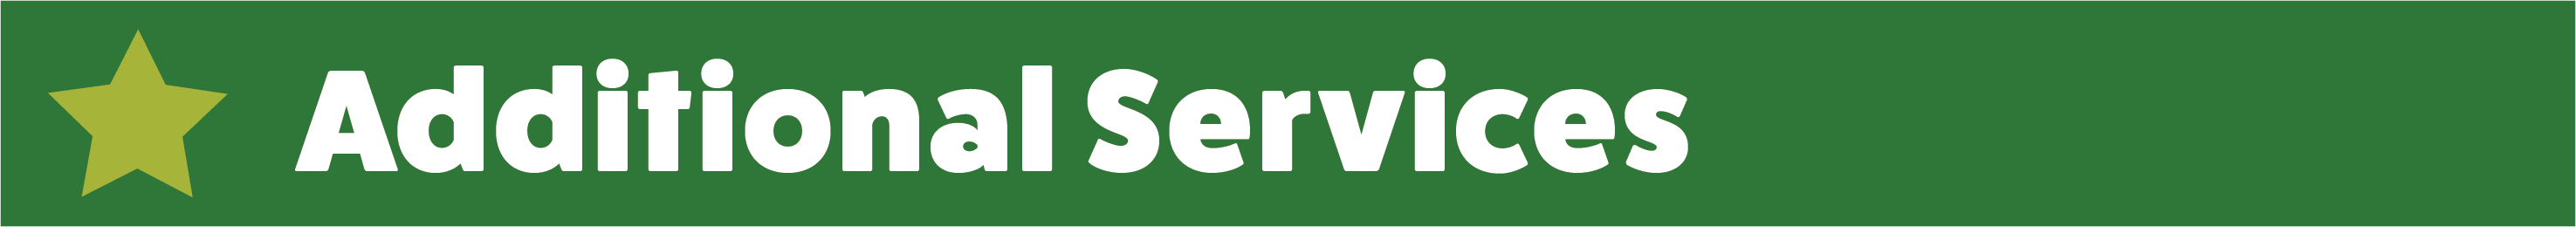 Additional-Sevices-Banner.png